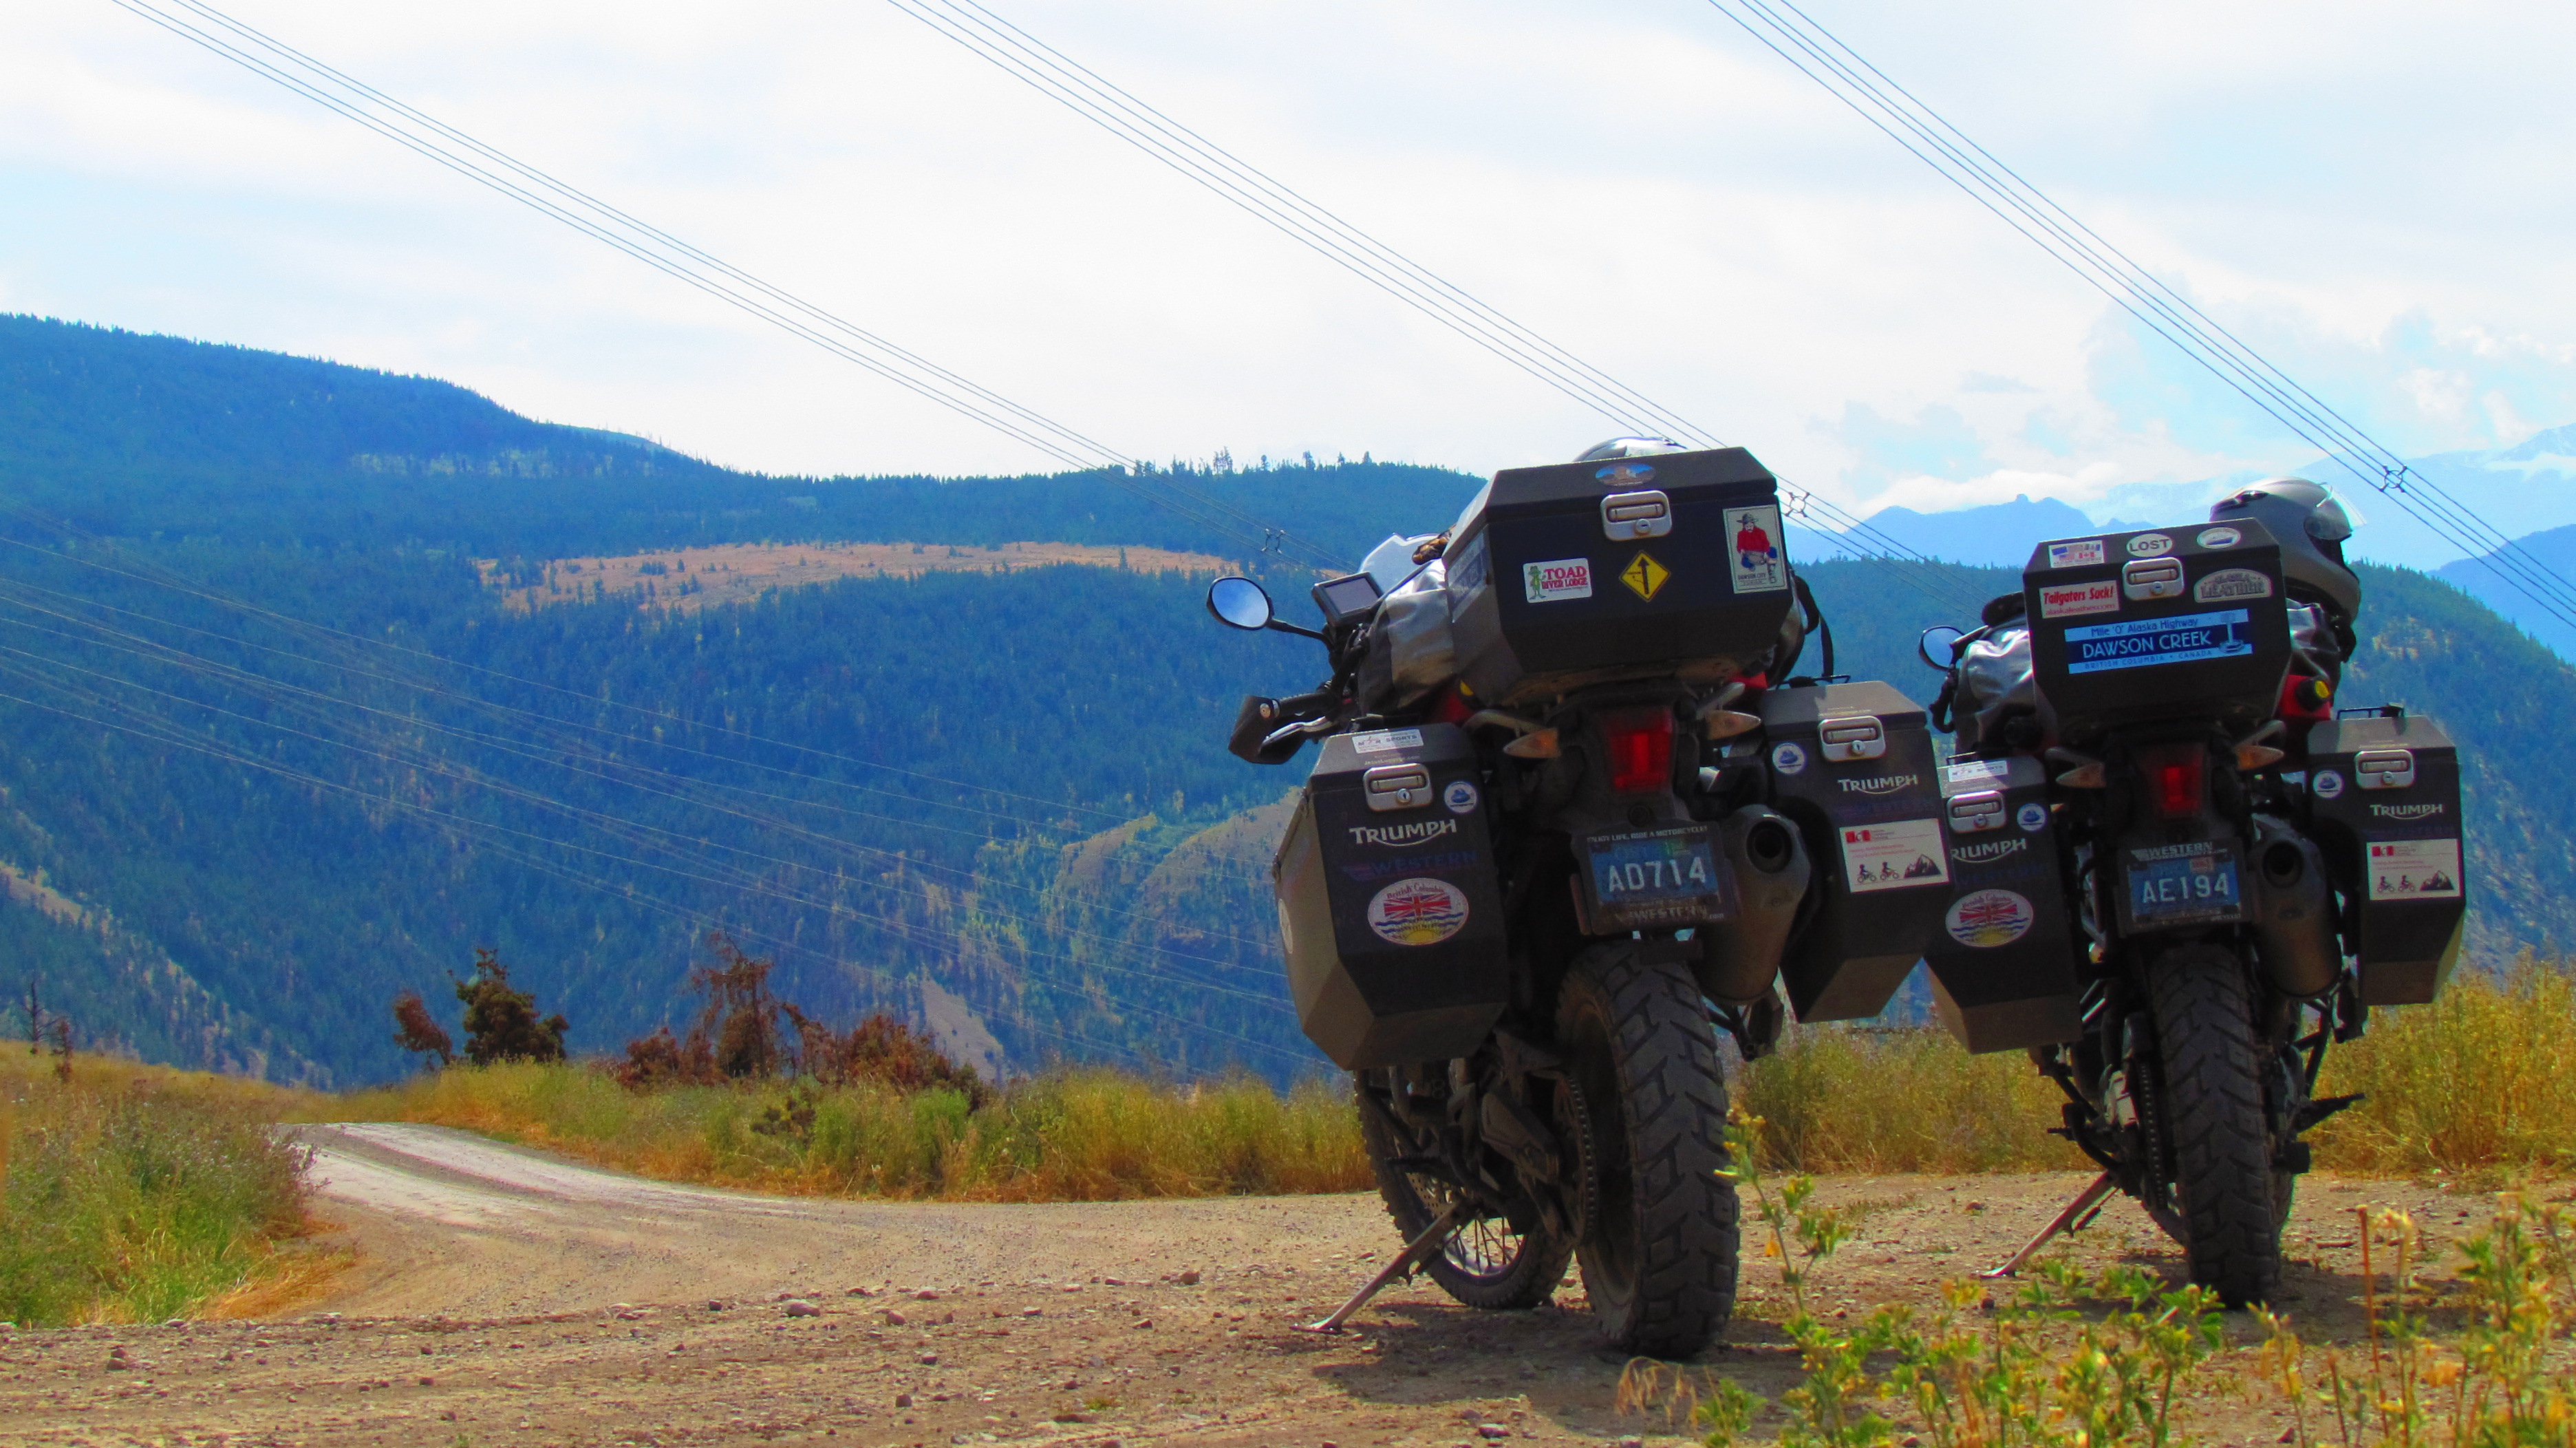 Triumph Tiger 800xc Review Advgrrl Motorcycle Adventures More